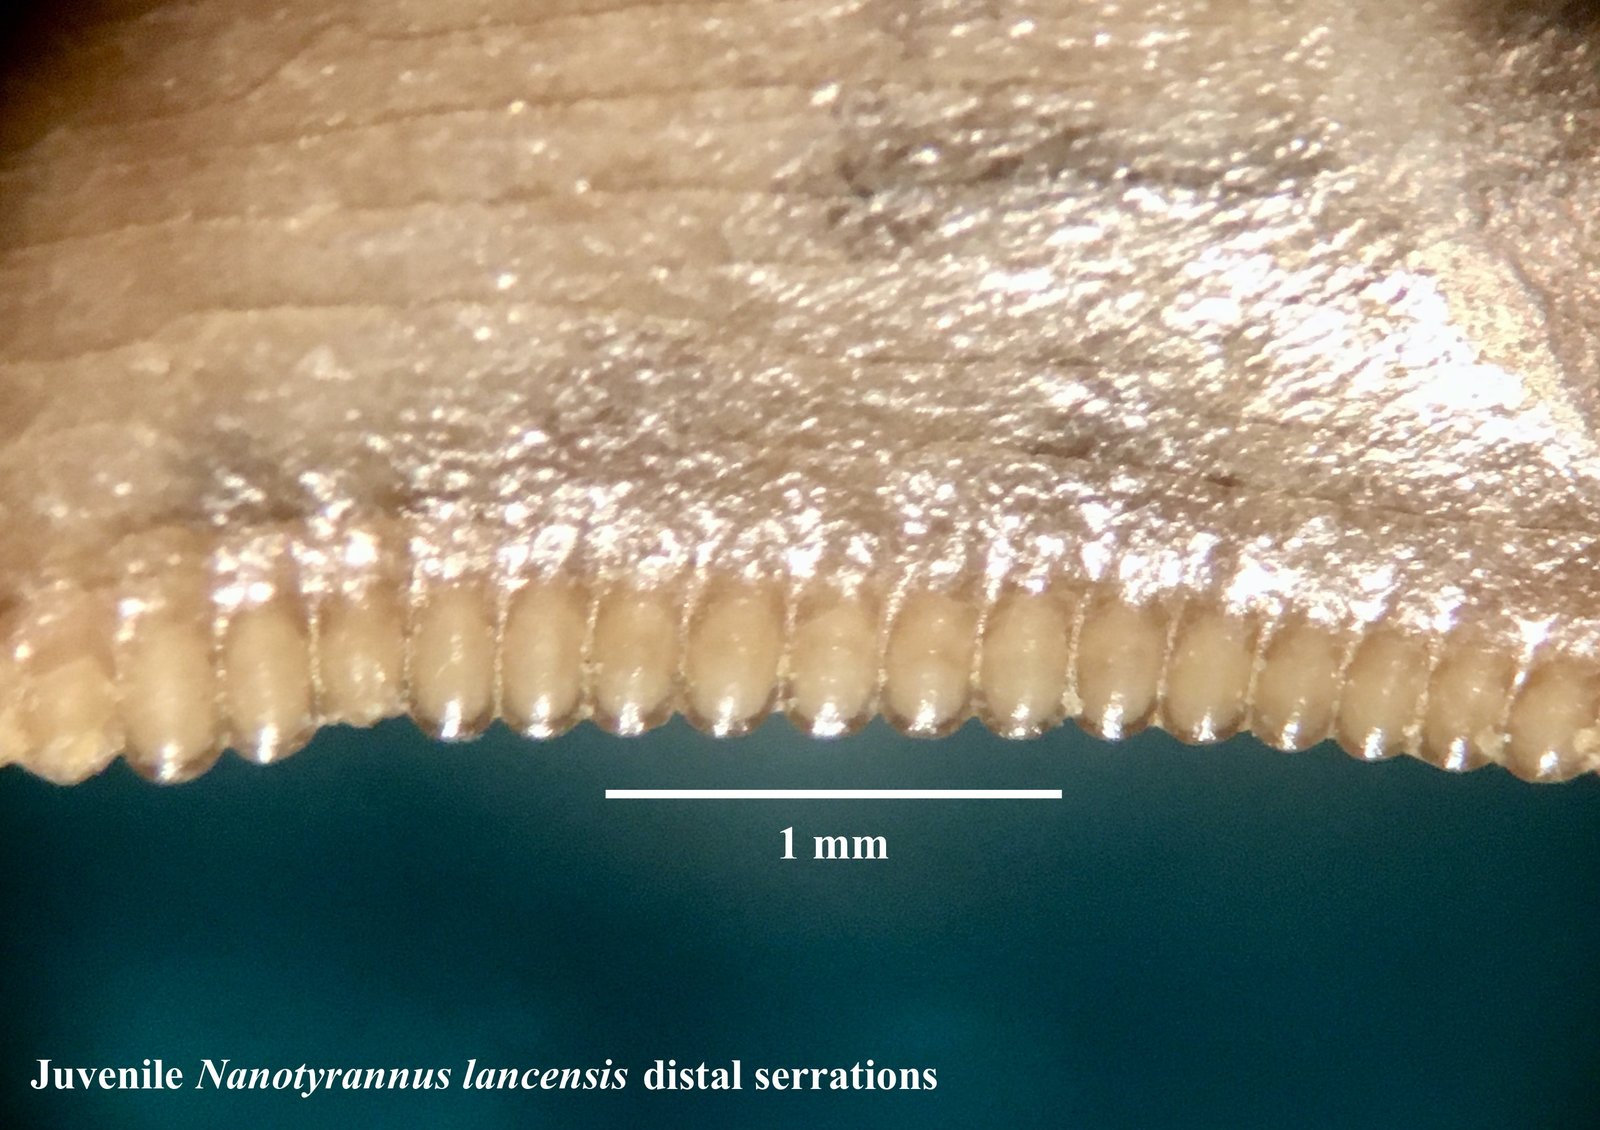 Nanotyrannus serrations